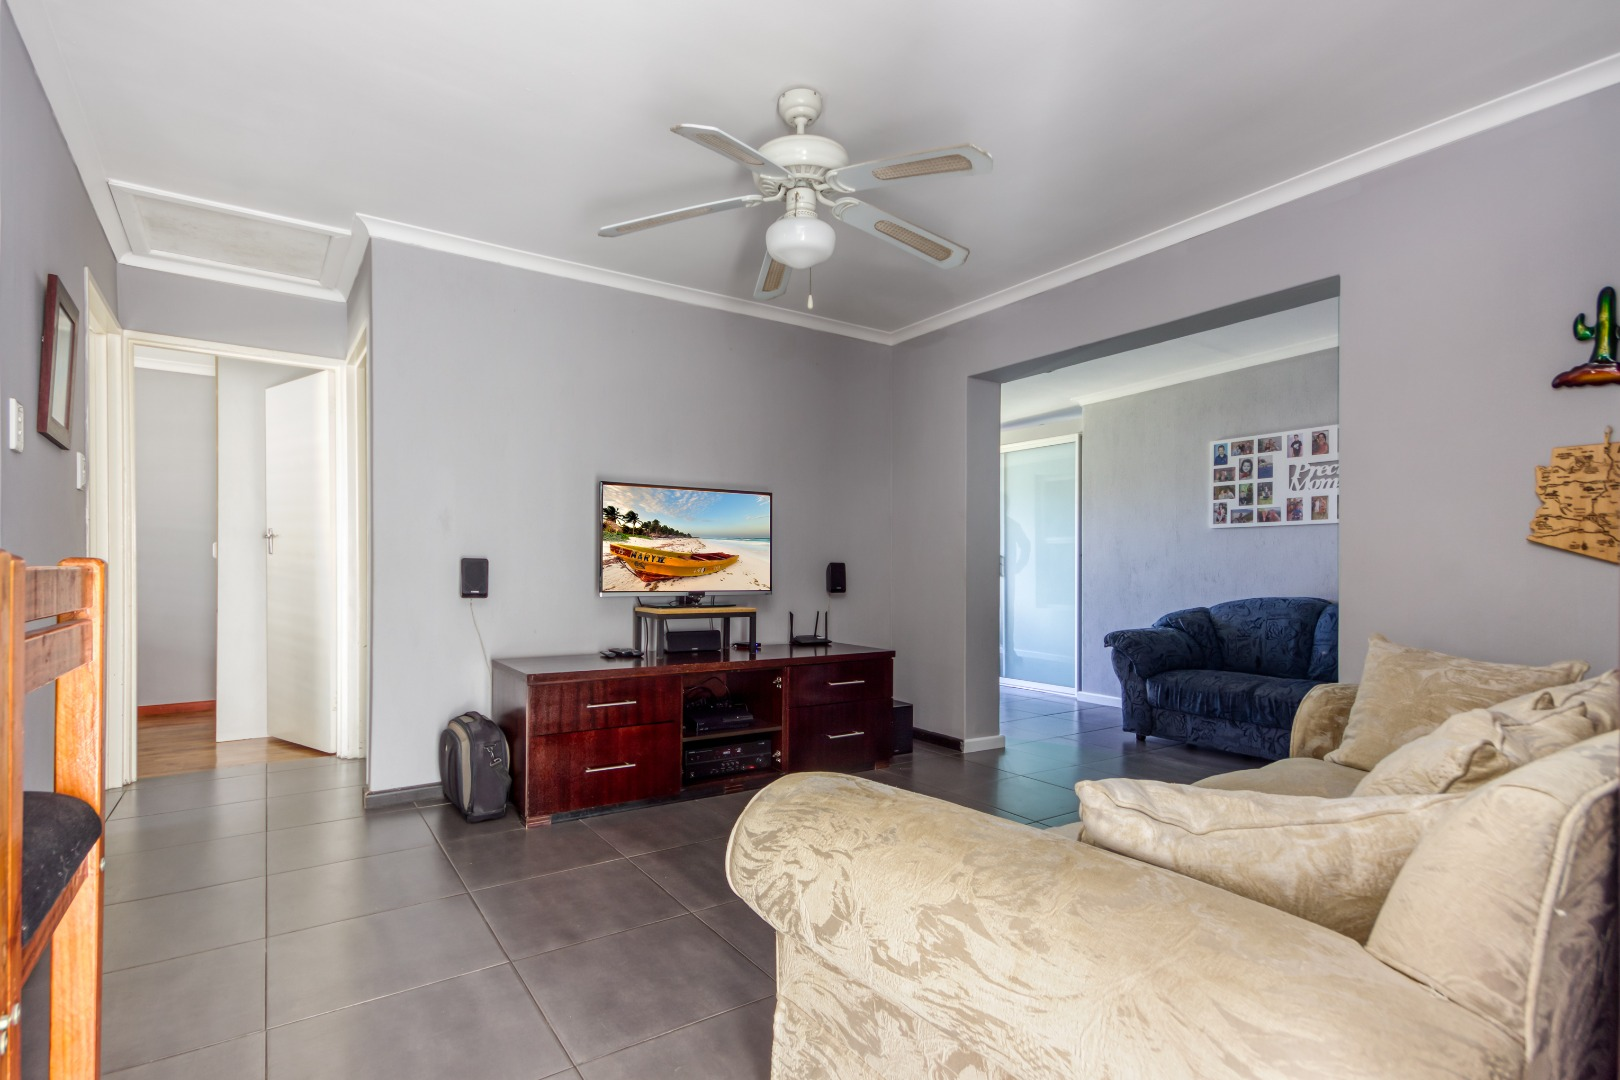 3 Bedroom Townhouse For Sale in Anchorage Park